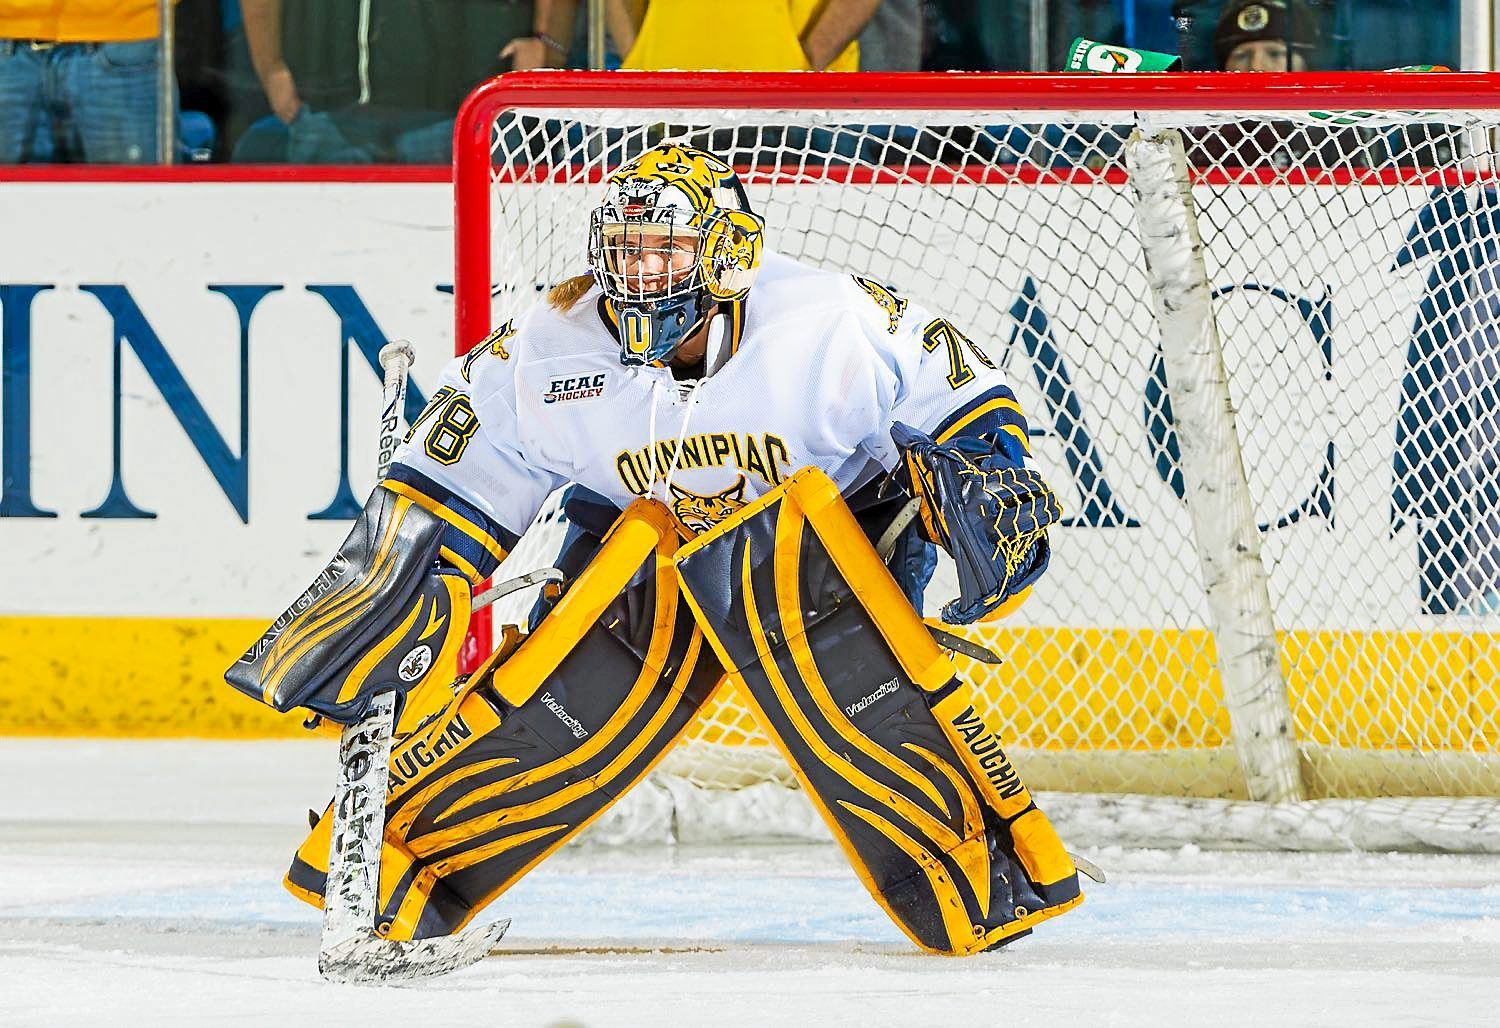 Chelsea Laden Quinnipiac Women S Hockey Team Shutting Out Opposition New Haven Register